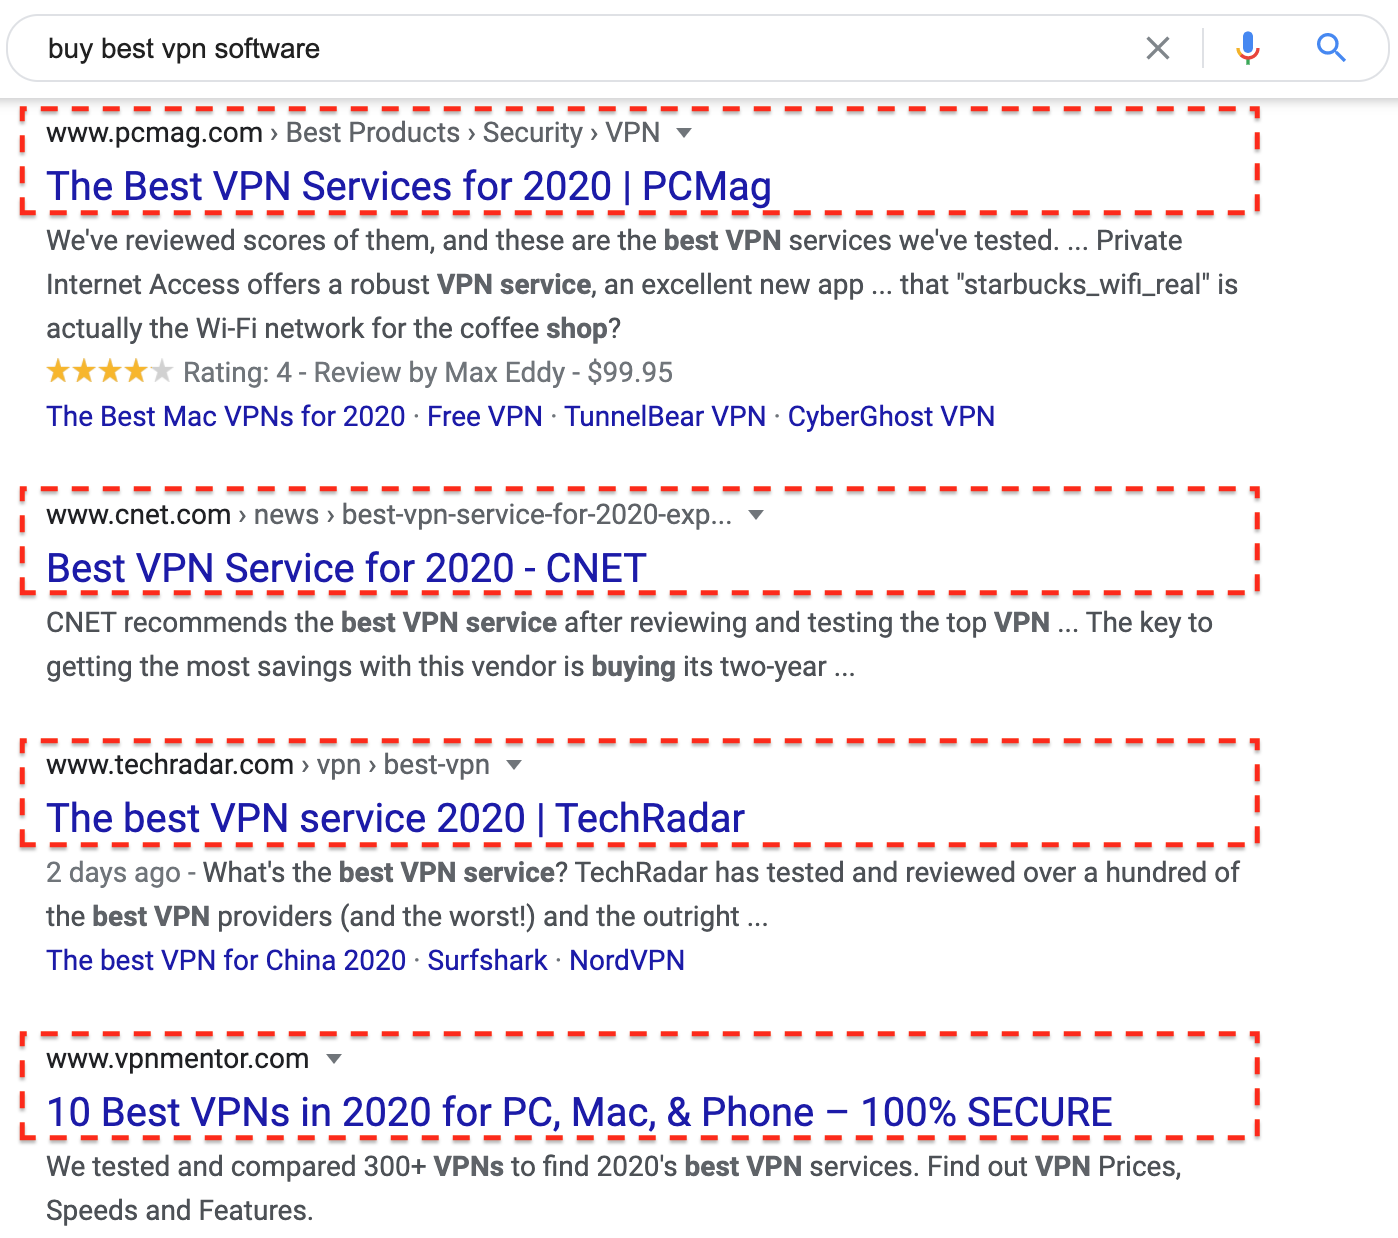 """Google search for """"buy best vpn software"""" from a US IP"""